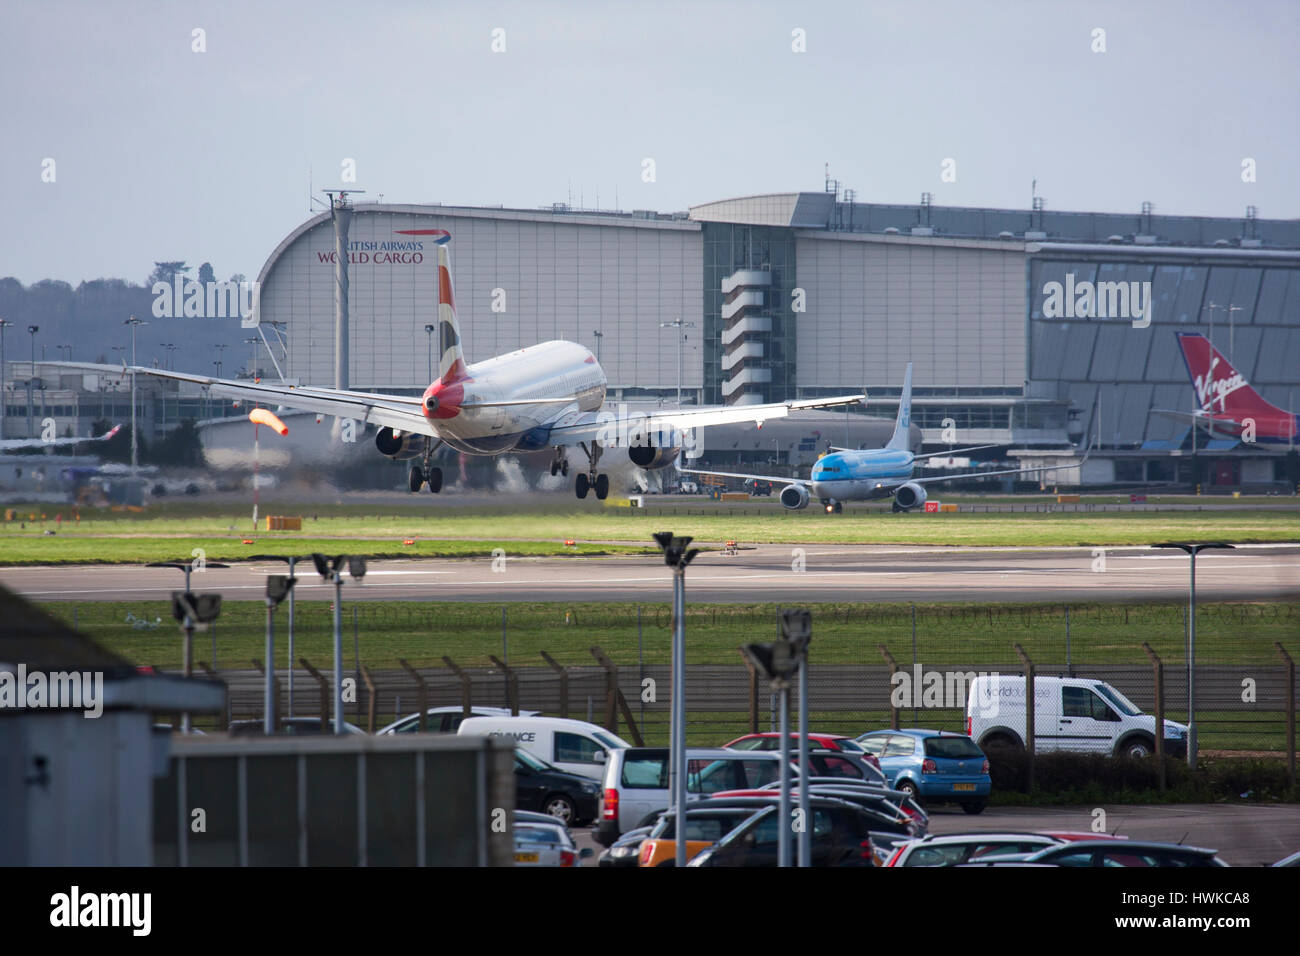 British Airways  Airbus A319 landing at London Heathrow Airport, UK - Stock Image